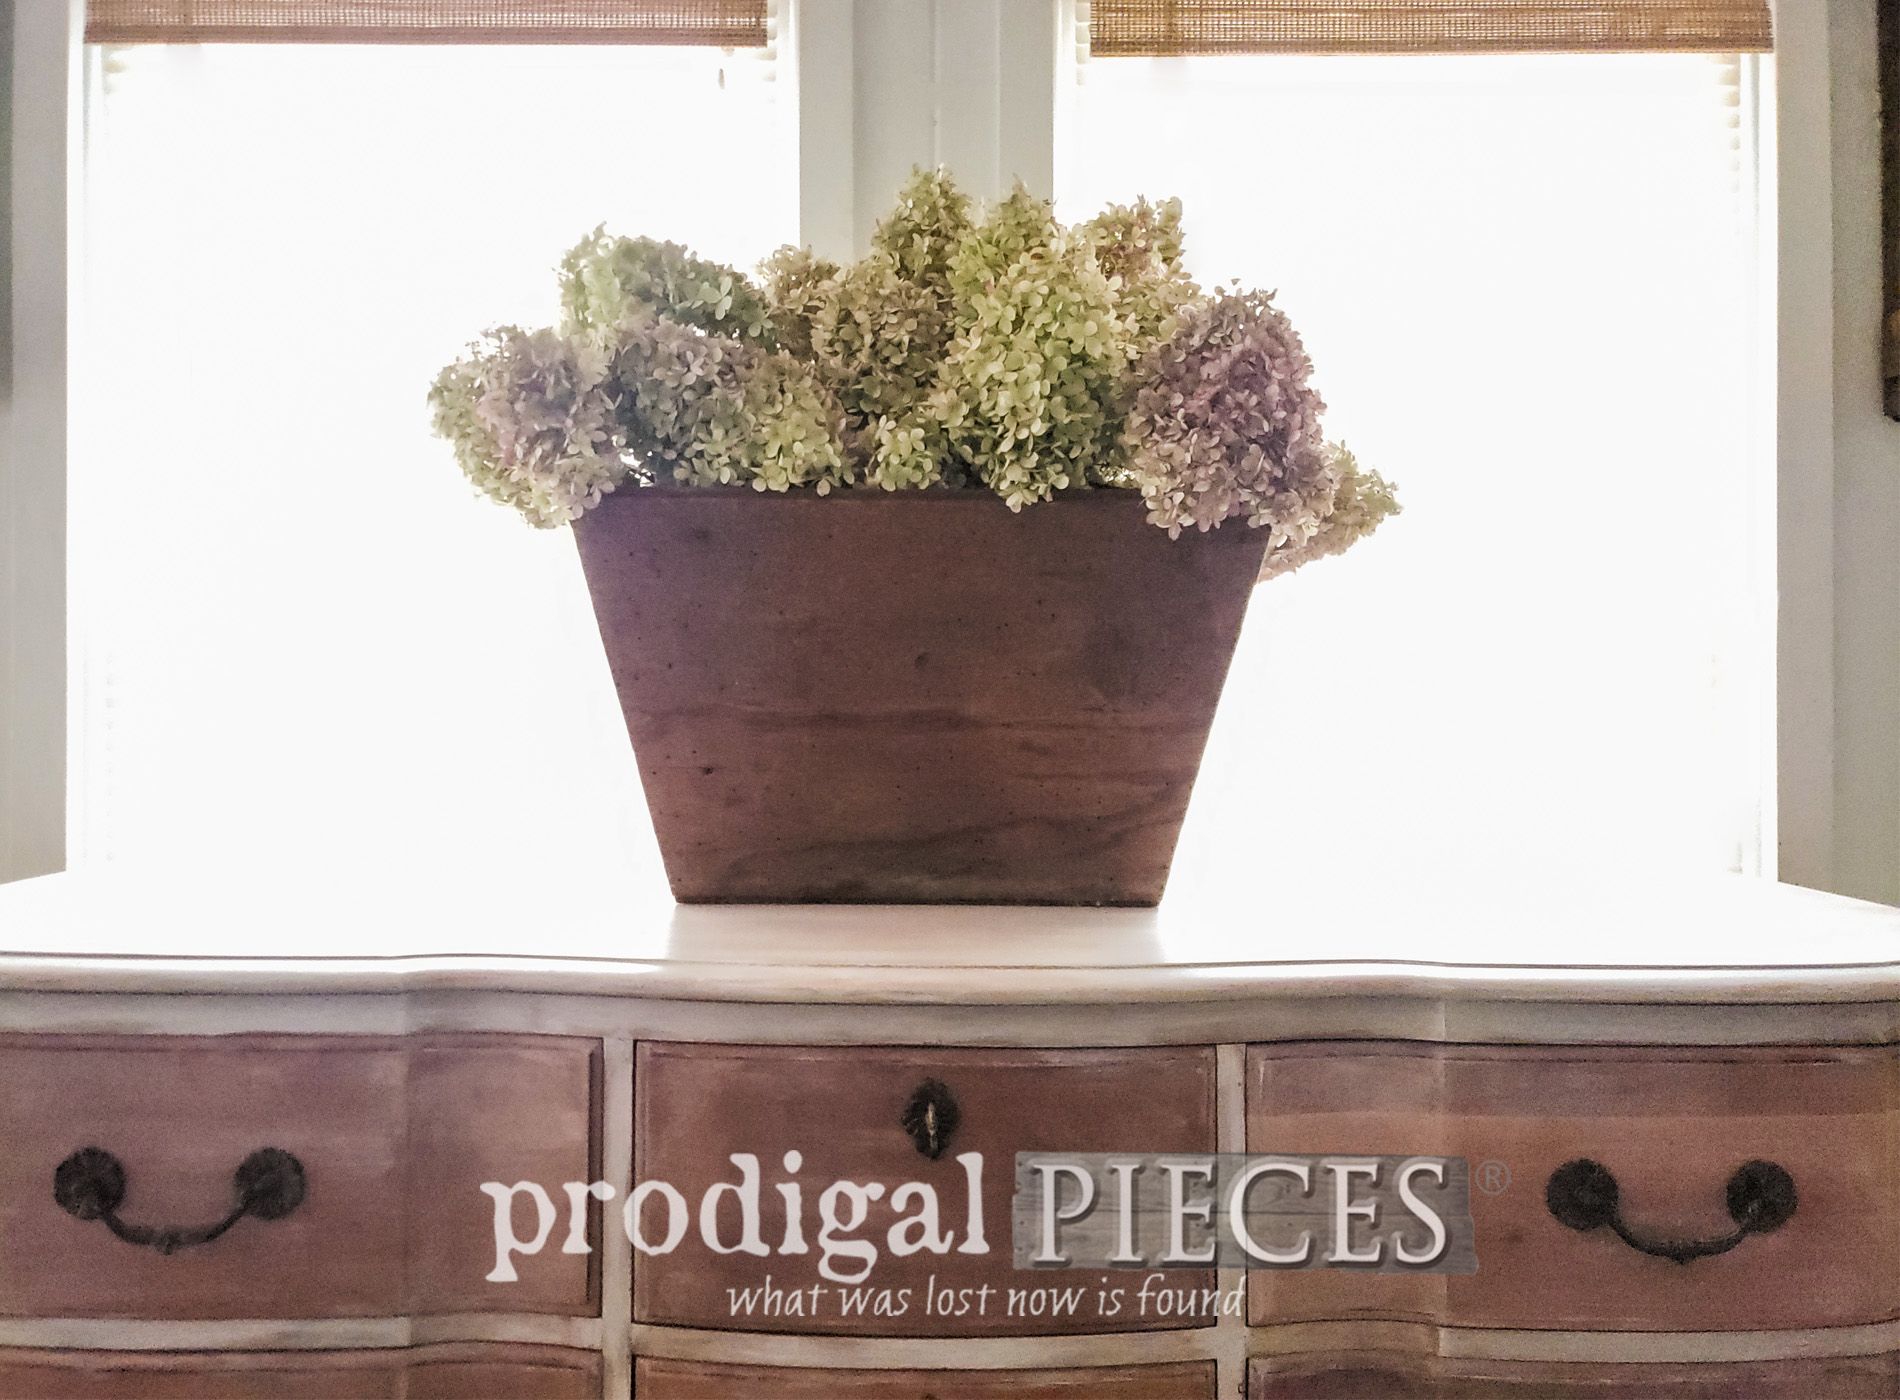 Featured Vintage Serpentine Dresser with French Country Style by Larissa of Prodigal Pieces | prodigalpieces.com #prodigalpieces #furniture #vintage #farmhouse #french #bedroom #home #homedecor